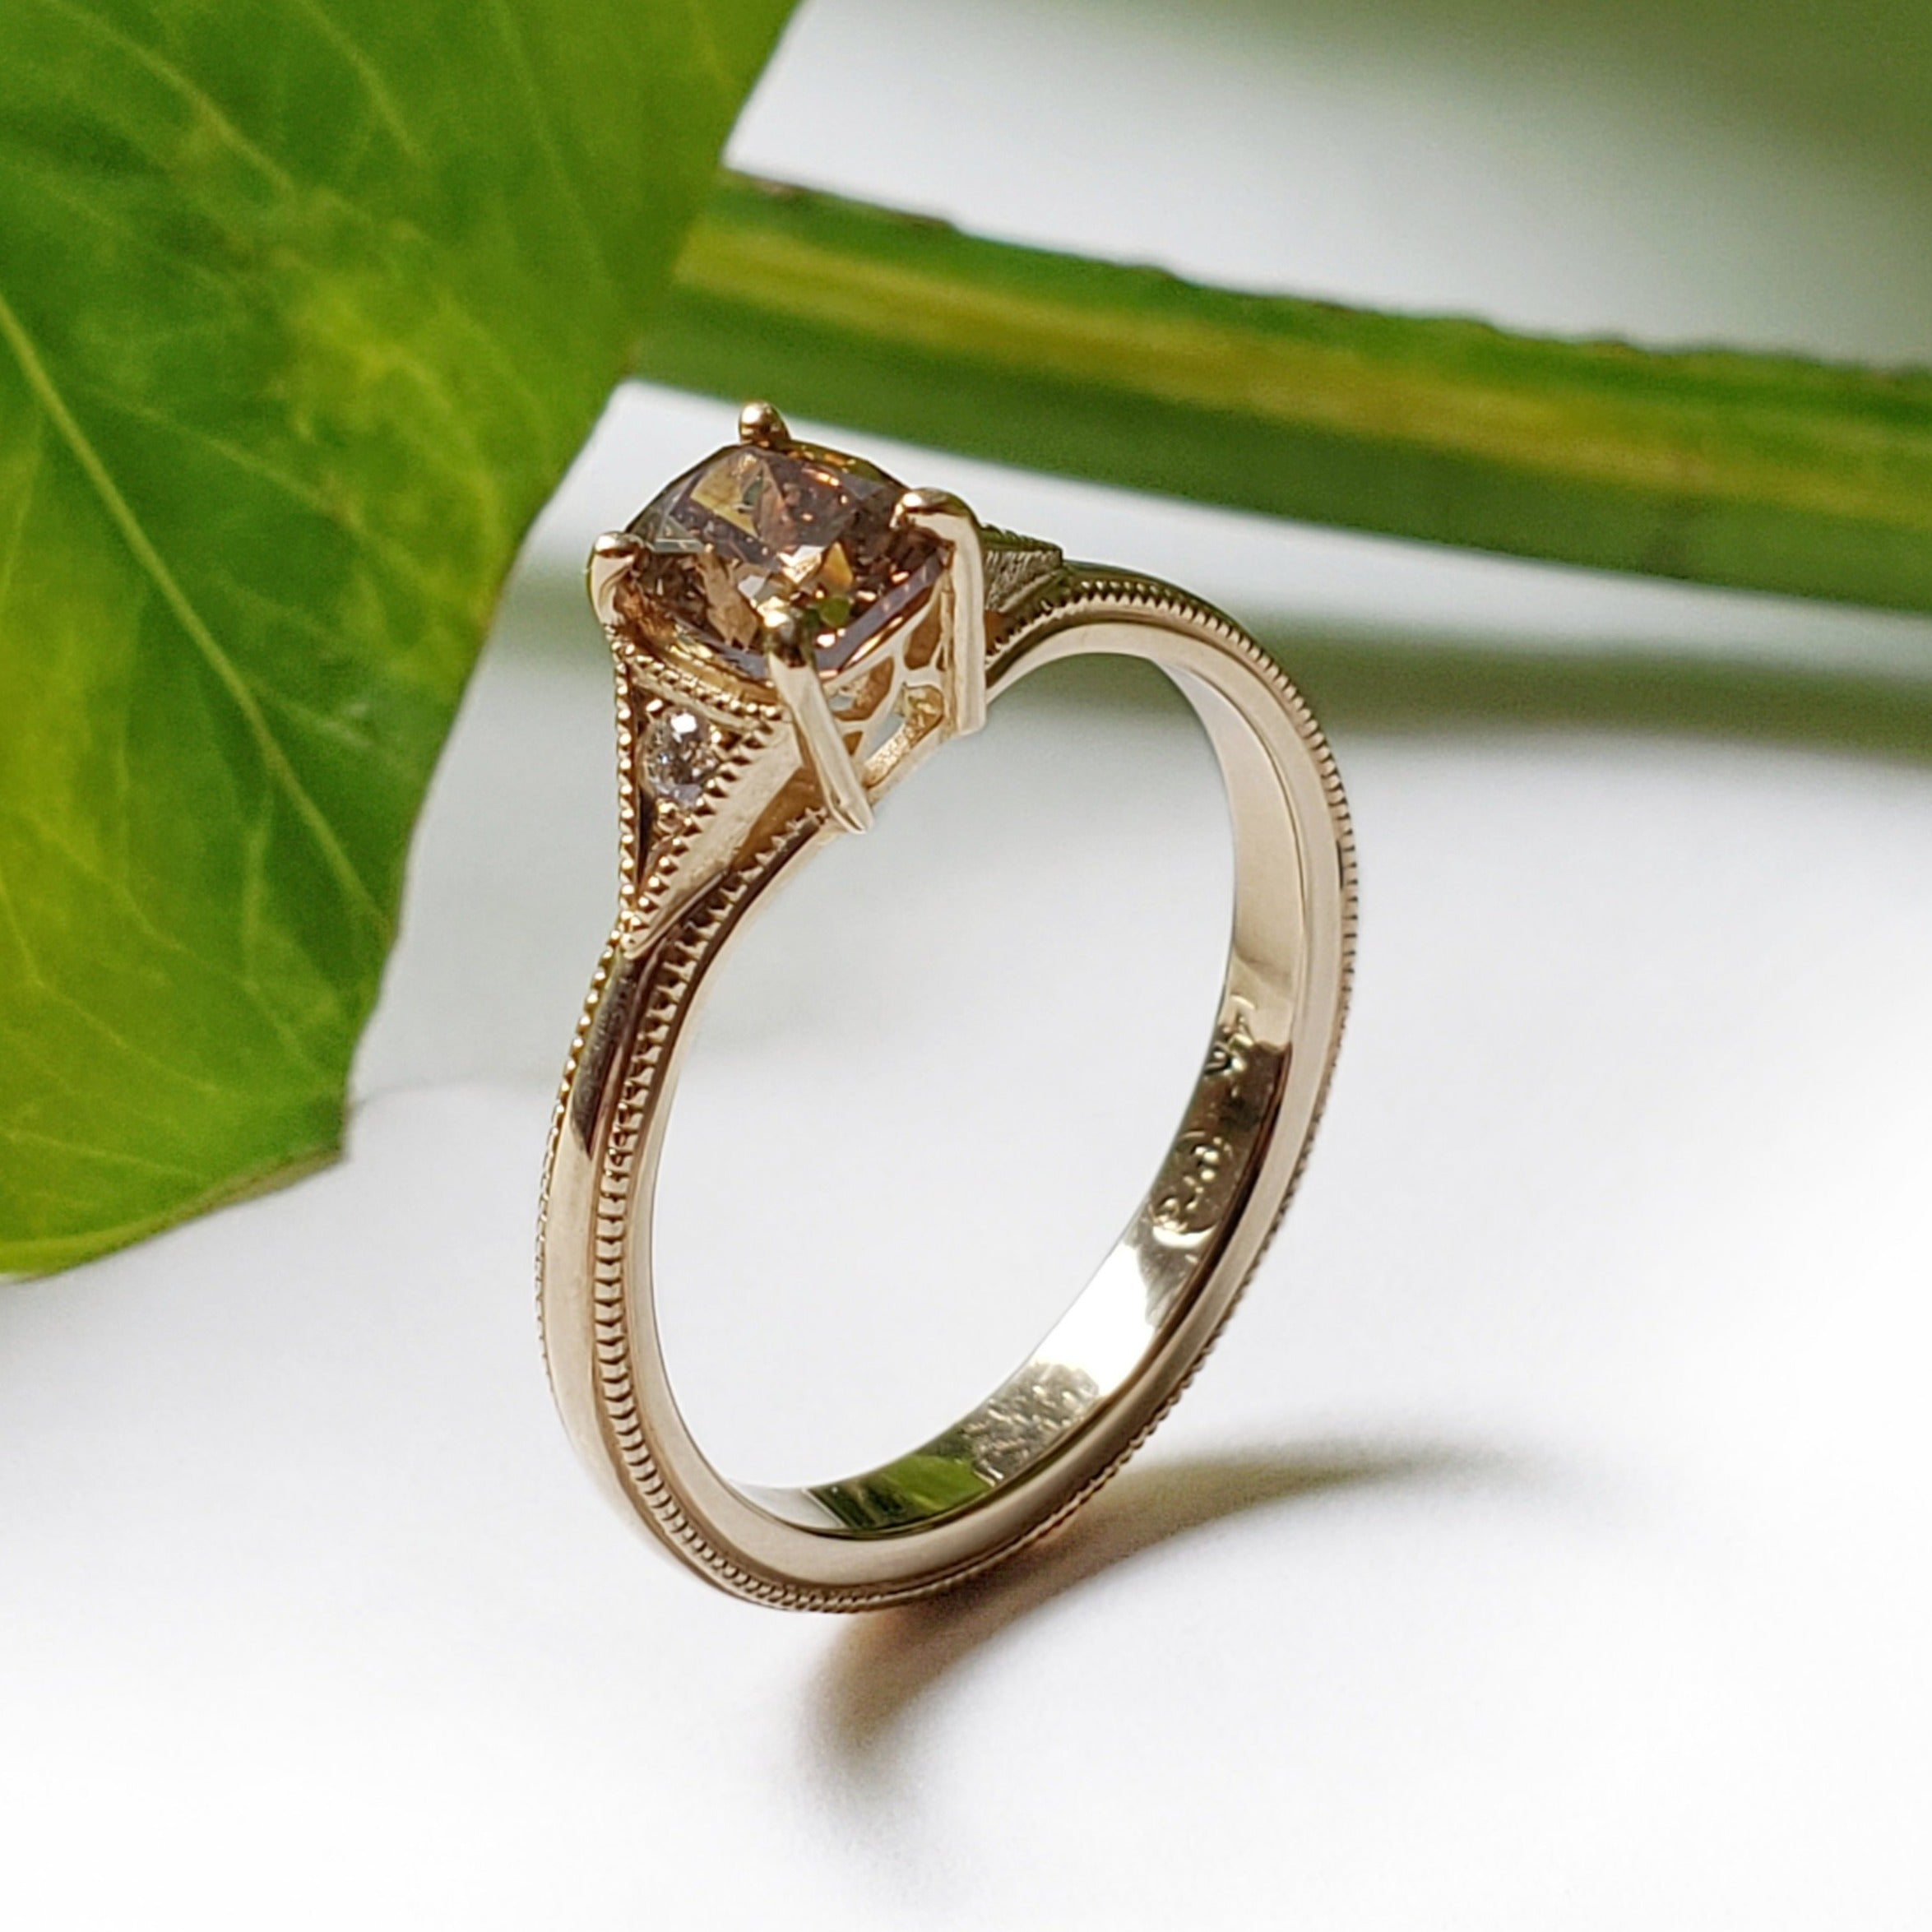 14kt yellow gold cognac cushion cut brown diamond Cleo engagement ring Canadian diamonds millgrain polish vintage style era design vancouver